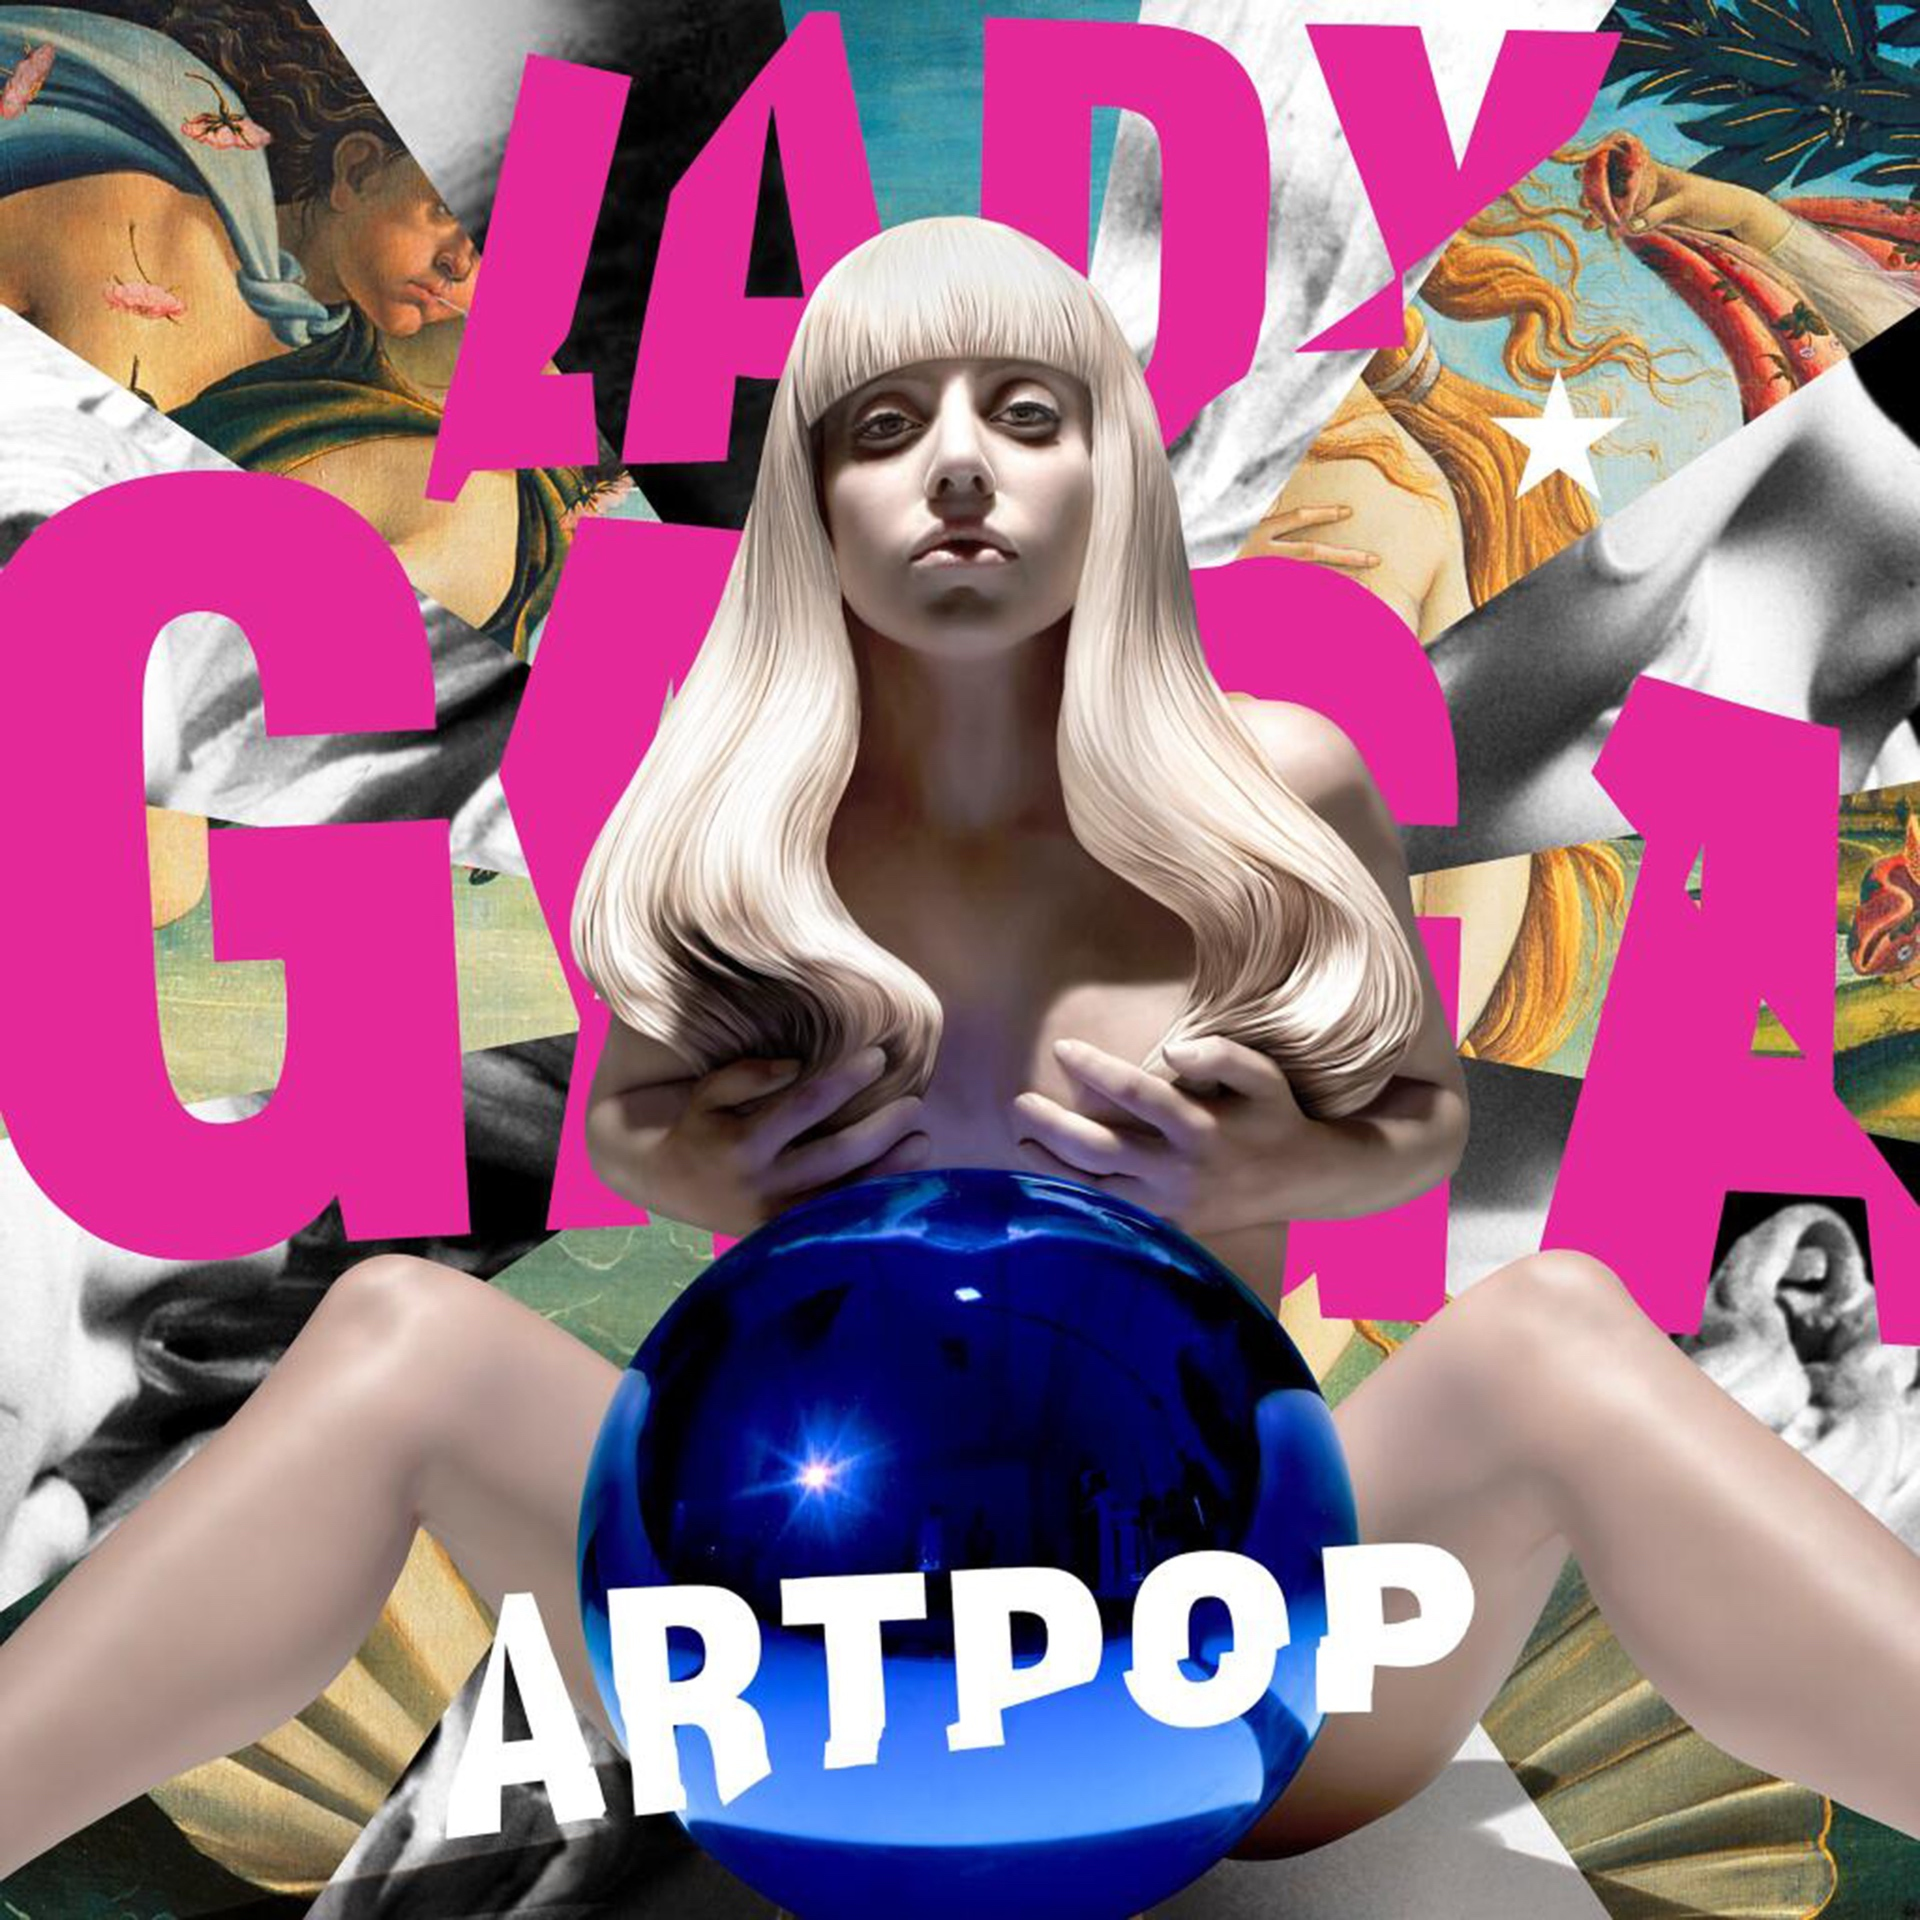 Artpop cover (2013) by Jeff Koons - Pako Campo